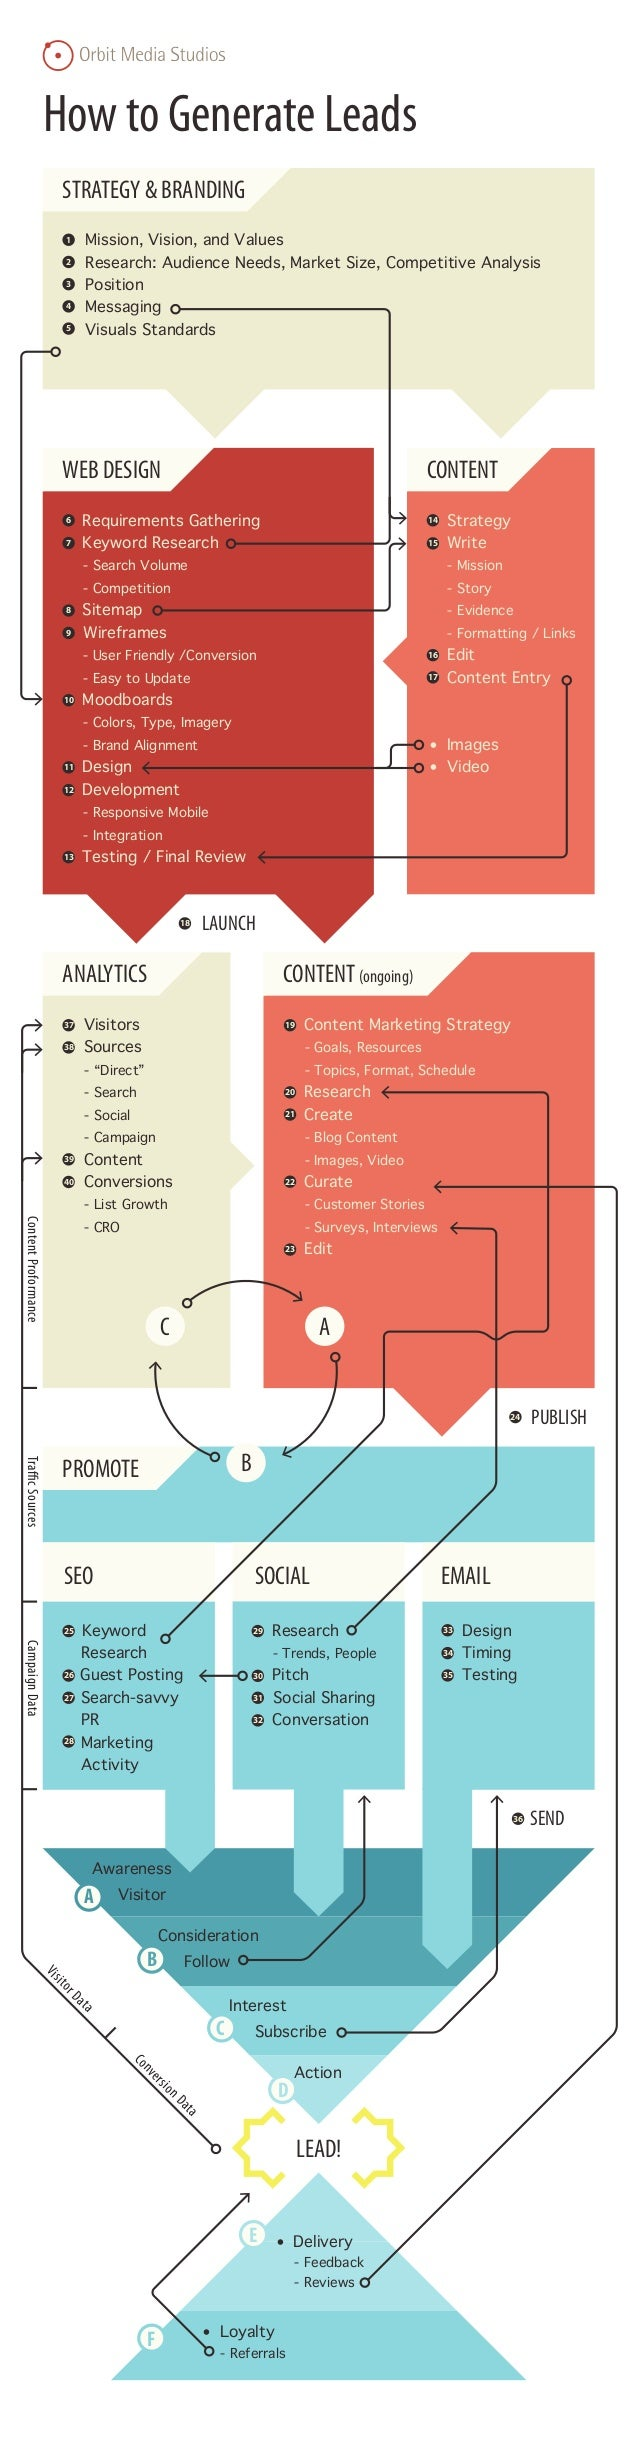 How to Generate Leads STRATEGY & BRANDING 1 • 2 • 3 • 4 • 5 •  Mission, Vision, and Values Research: Audience Needs, Marke...